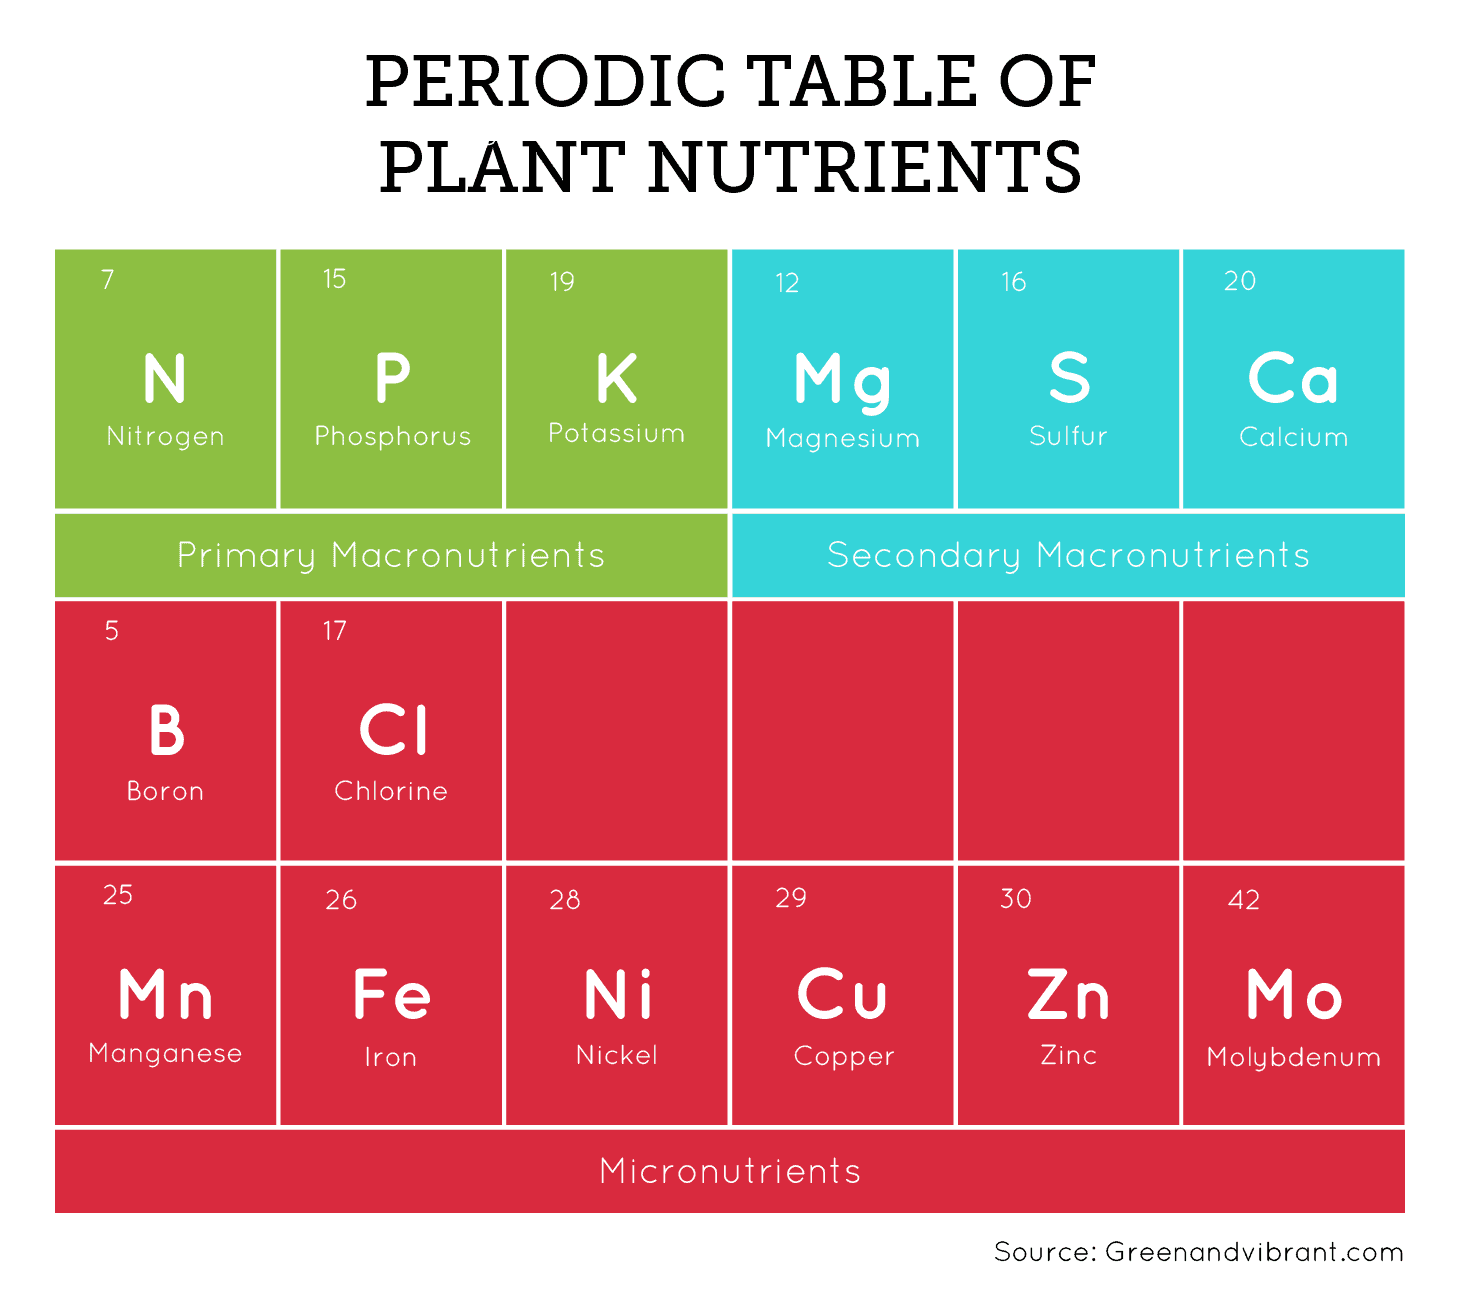 Plant Nutrients - Primary Macronutrients, Secondary Macronutrients, and Micronutrients